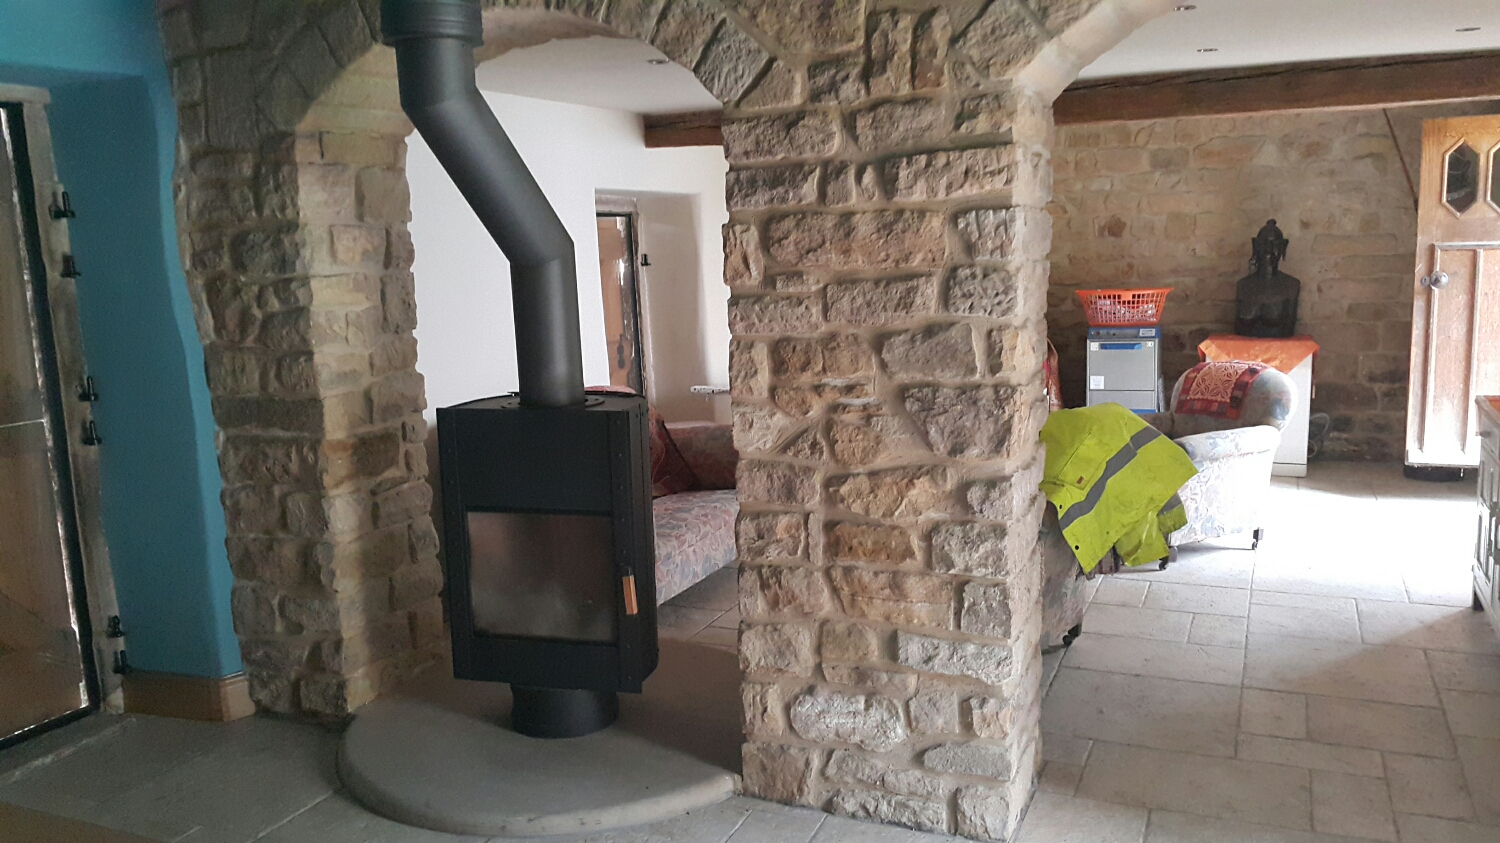 Cool as fire in the house. It pivots around so you can have the fire box towards you on either side of the room.